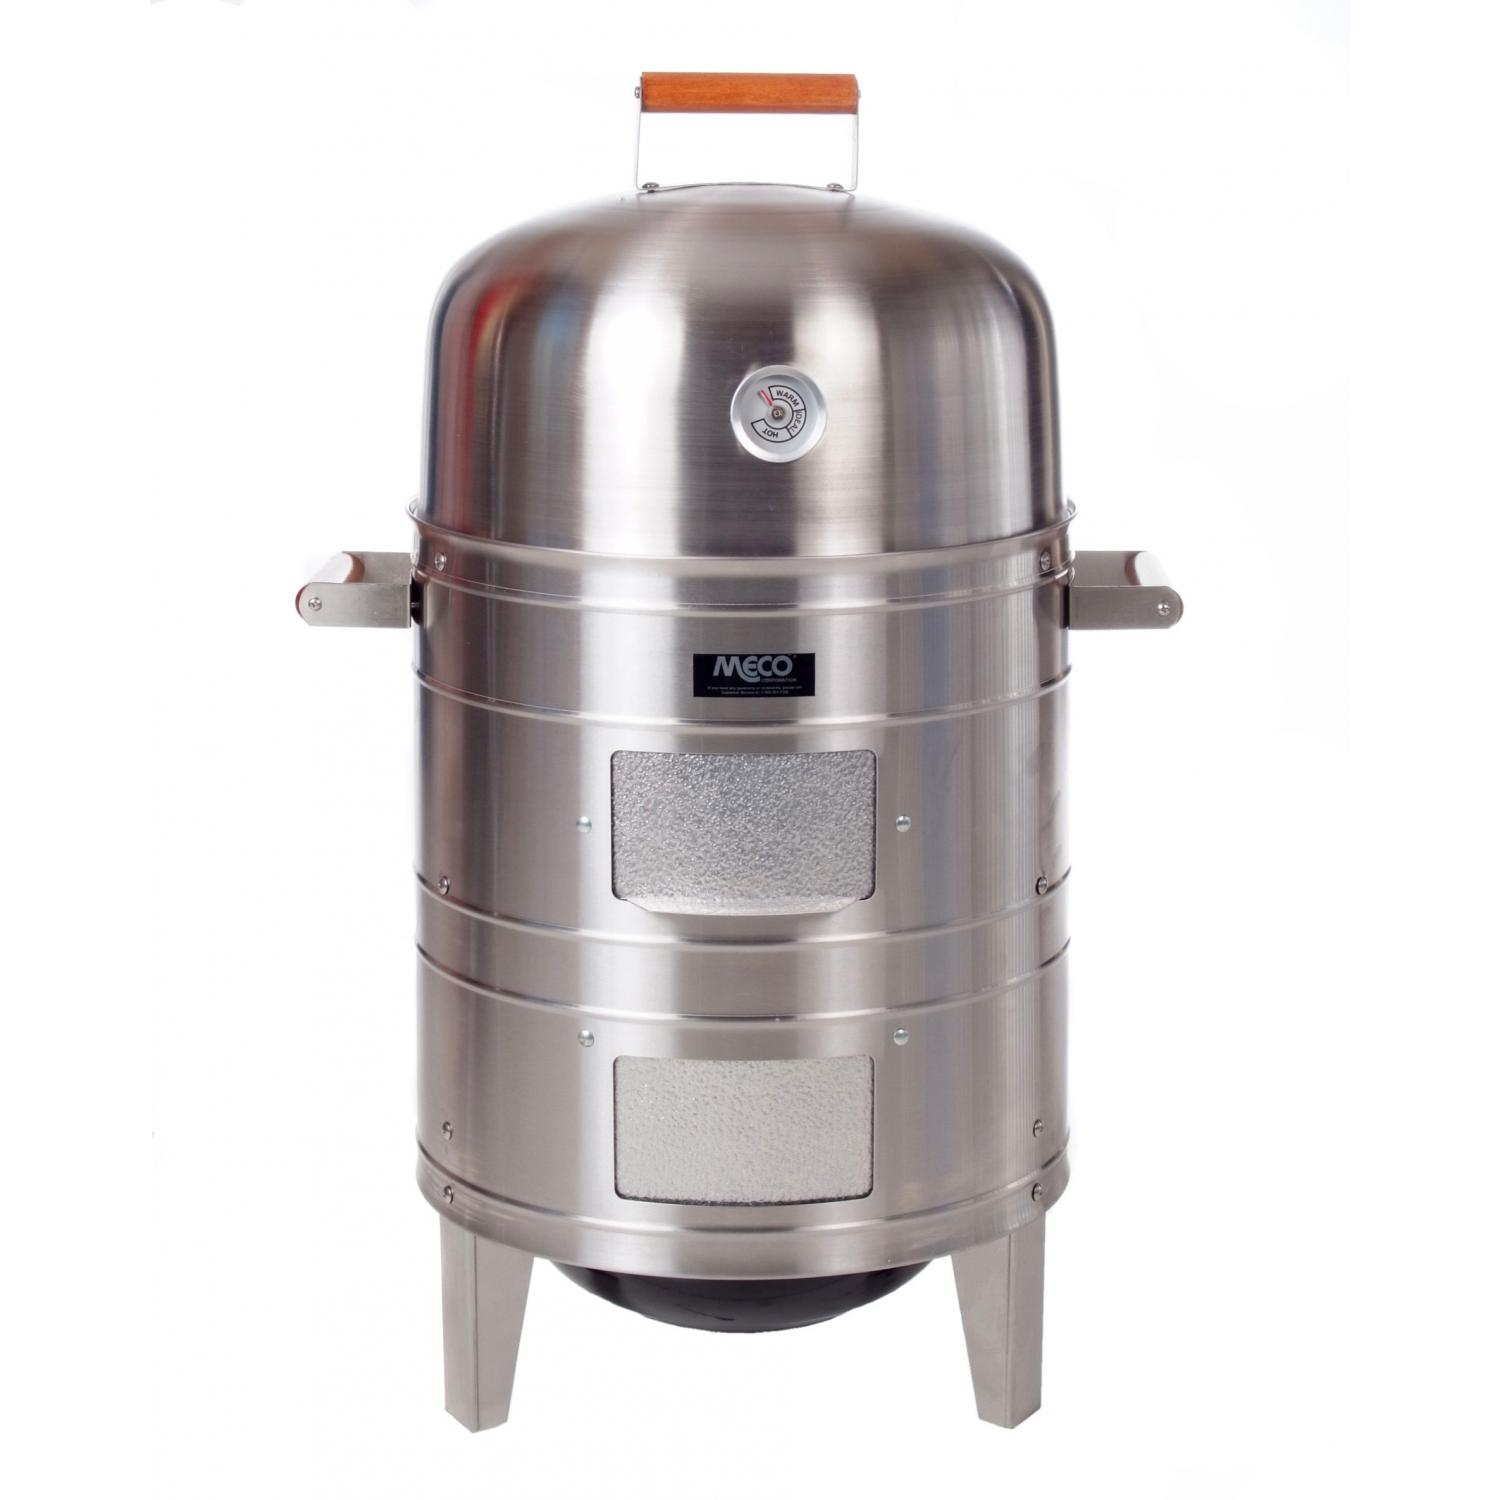 Meco Smokers - 5025 Charcoal Water Smoker - Stainless